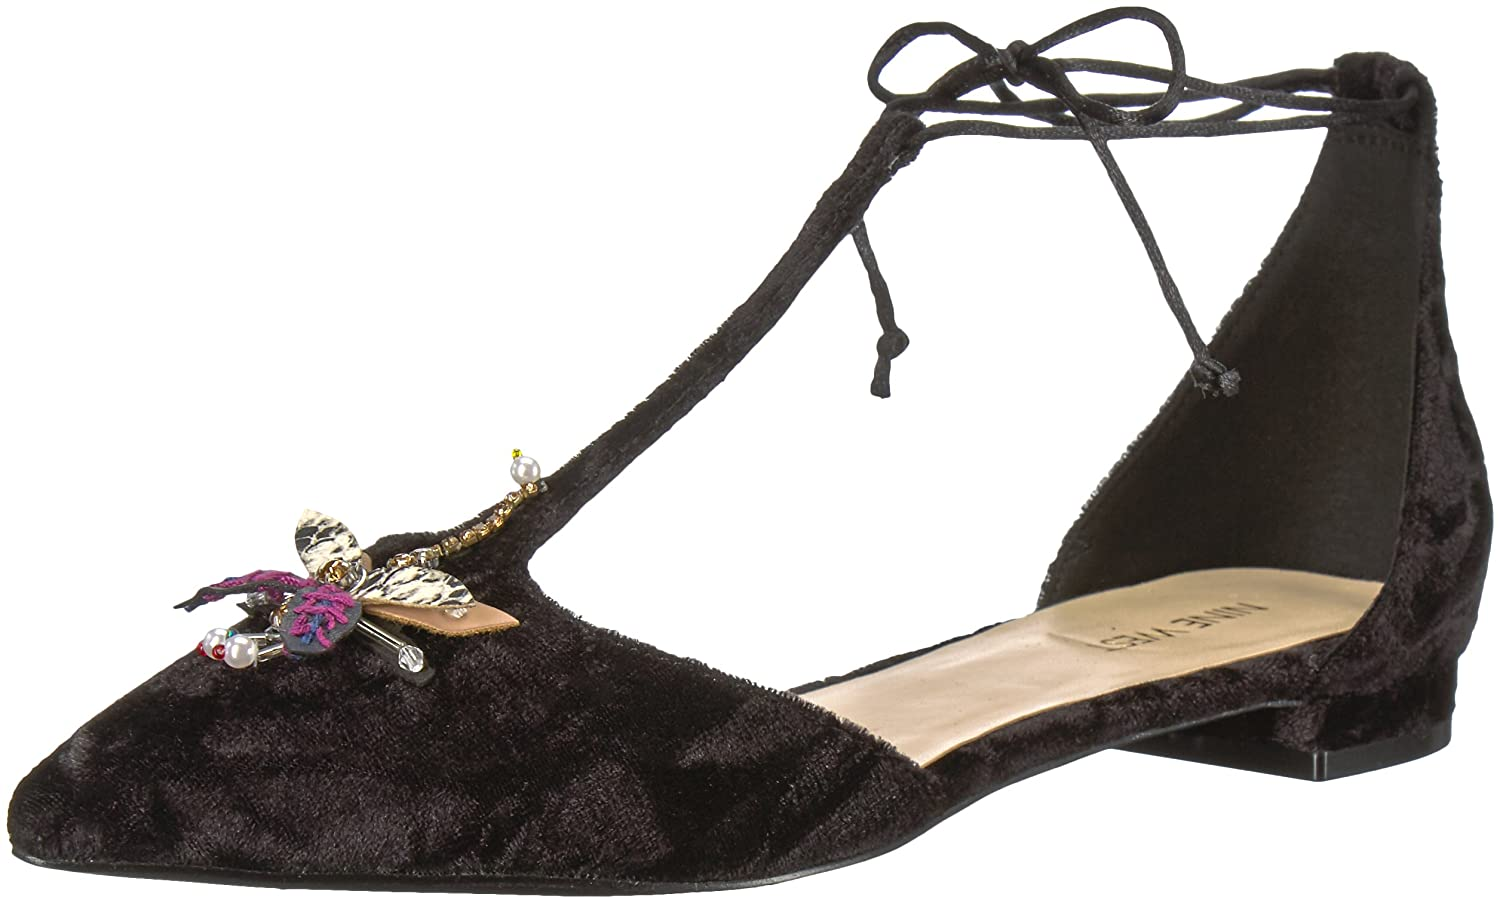 Nine West Women's Amethyst Fabric Pump B076B2NYBZ 6.5 B(M) US|Black